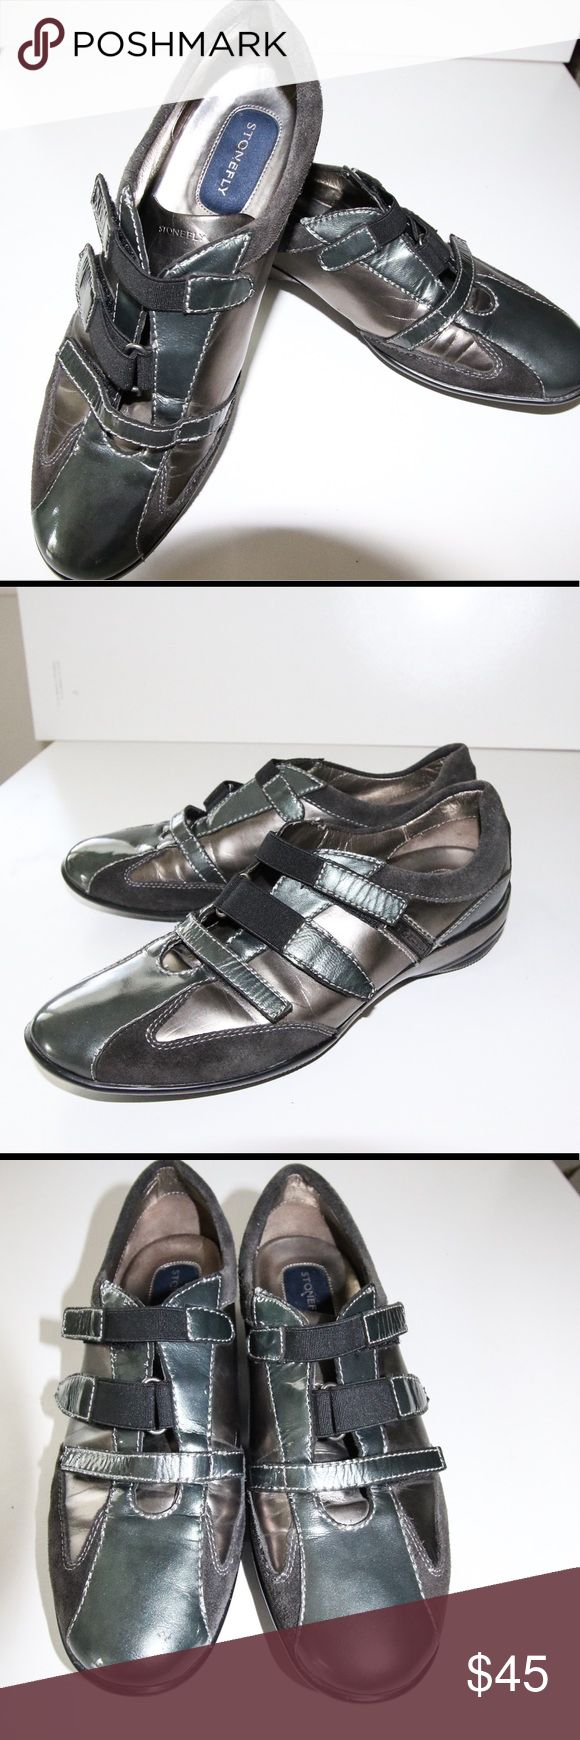 Like New Stonefly casual loafer sz 6.5 Stonefly men's loafer gray , like New Condition sz 6.5 stonefly Shoes Loafers & Slip-Ons